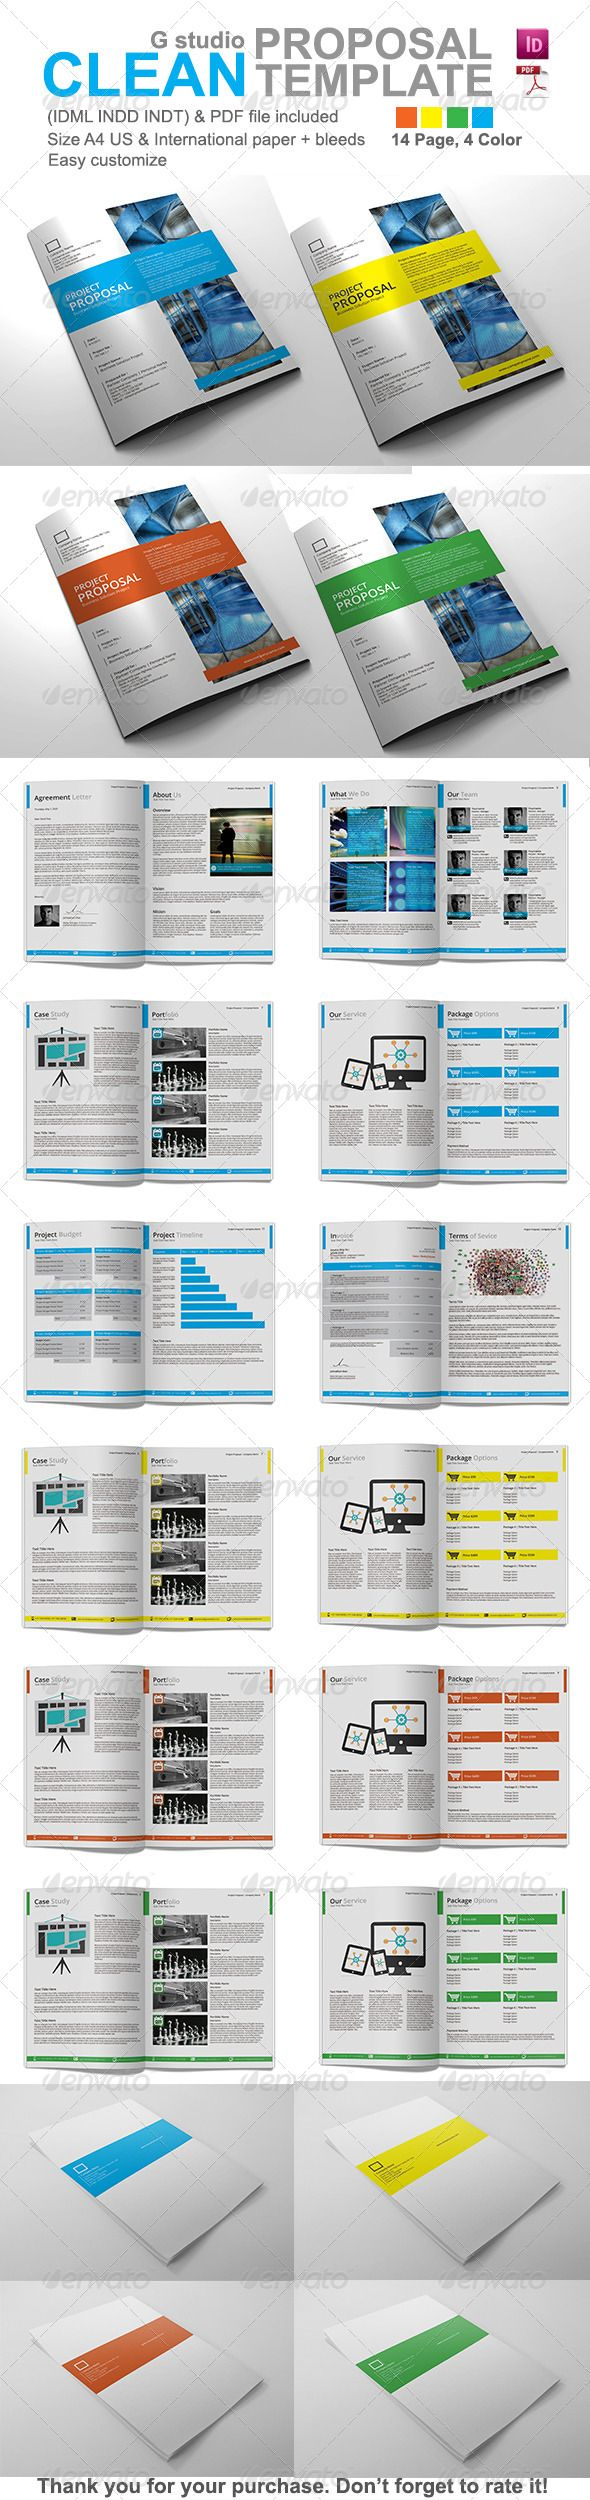 Commercial Proposal Format Interesting 504 Best Business Proposal Images On Pinterest  Proposal Templates .